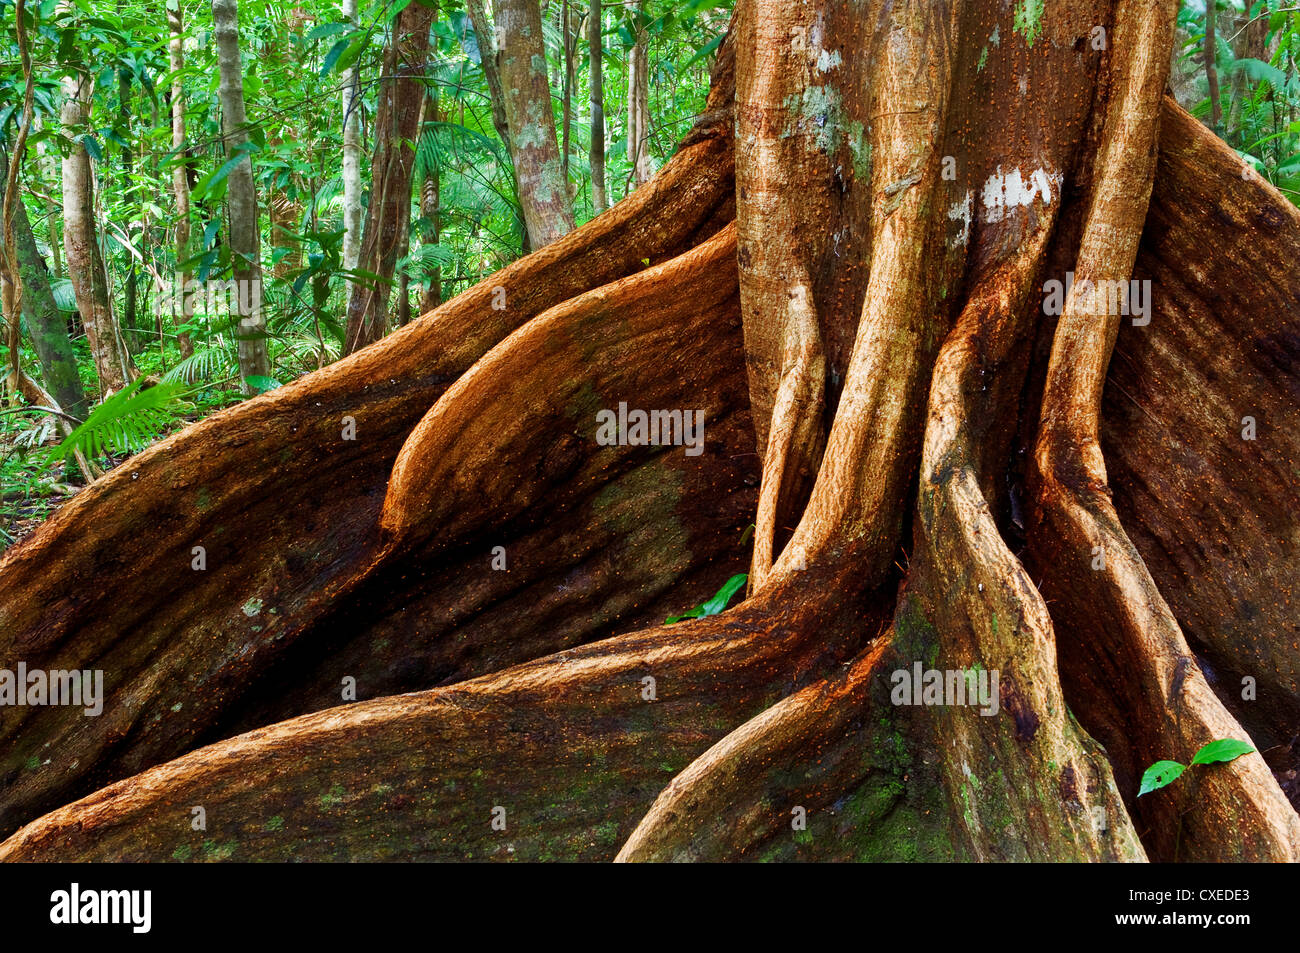 Giant root of an ancient tropical tree. - Stock Image